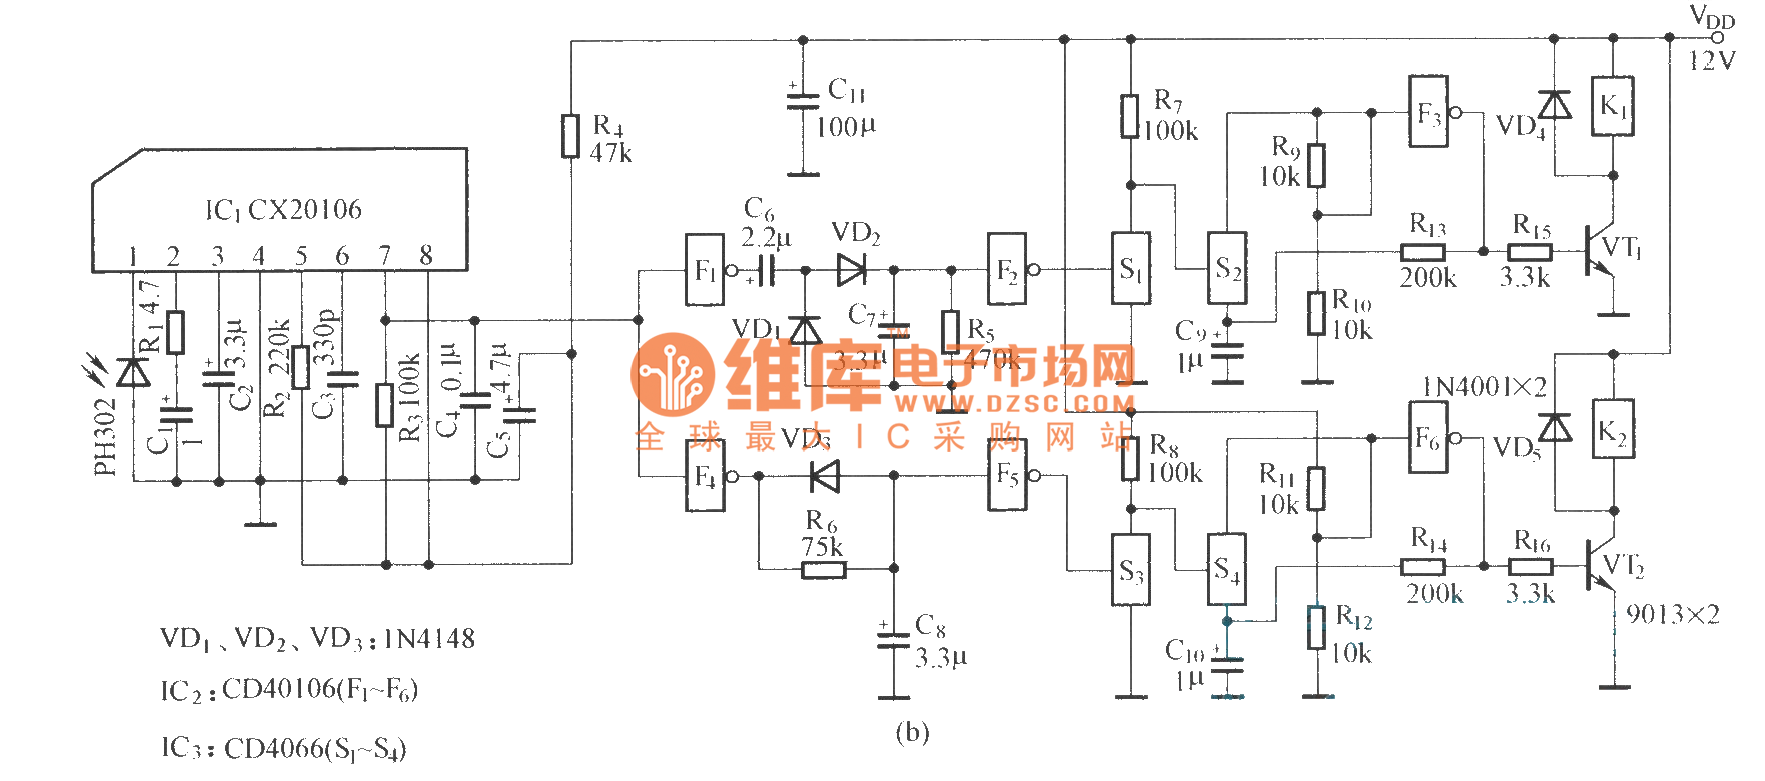 Single Button Dual Channel Infrared Remote Control Circuit Diagram Chopperforictester Basiccircuit Seekiccom